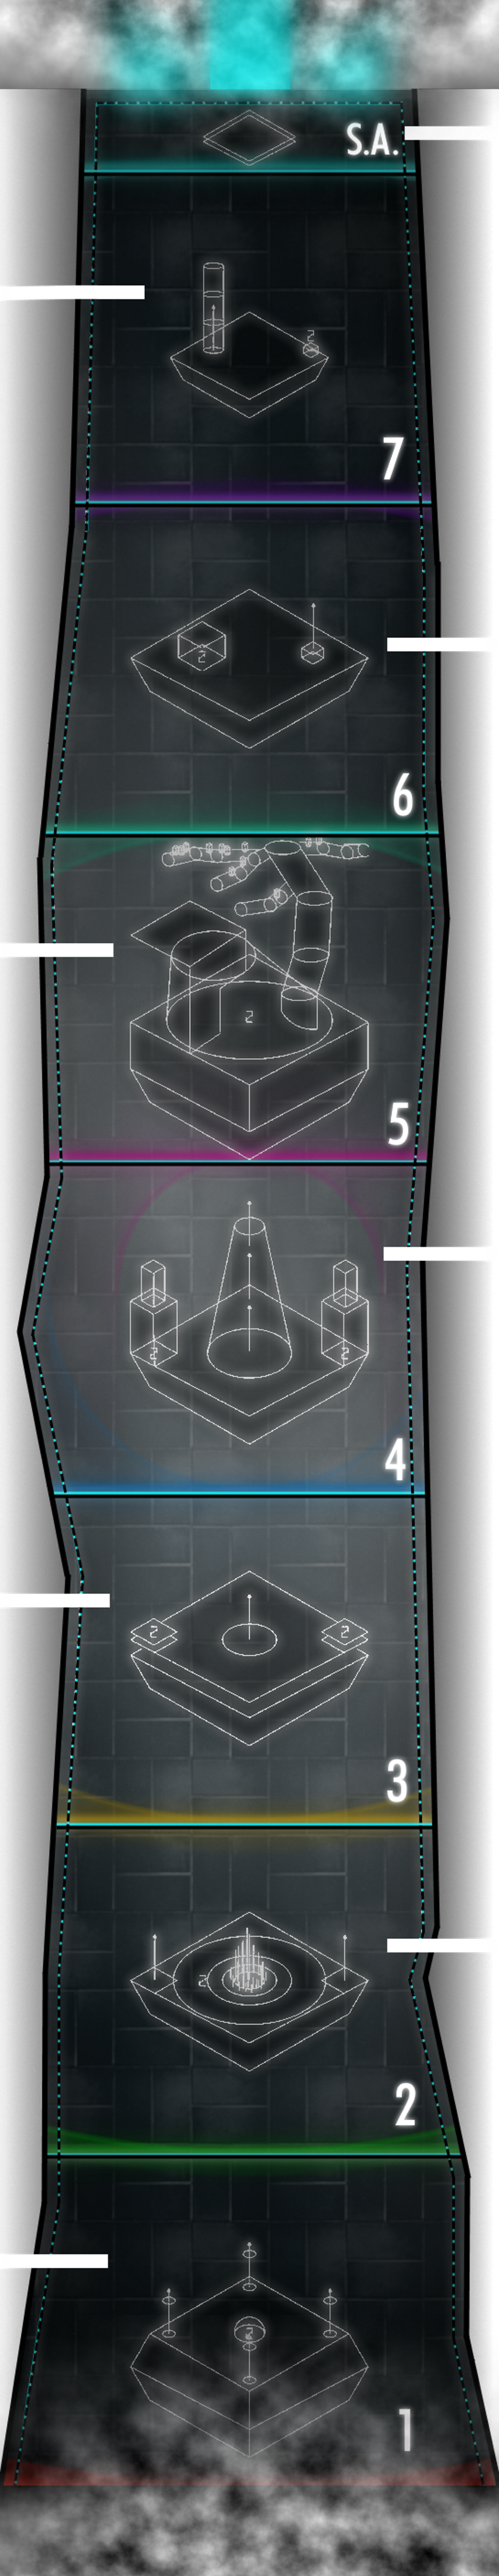 Tower outline image.png